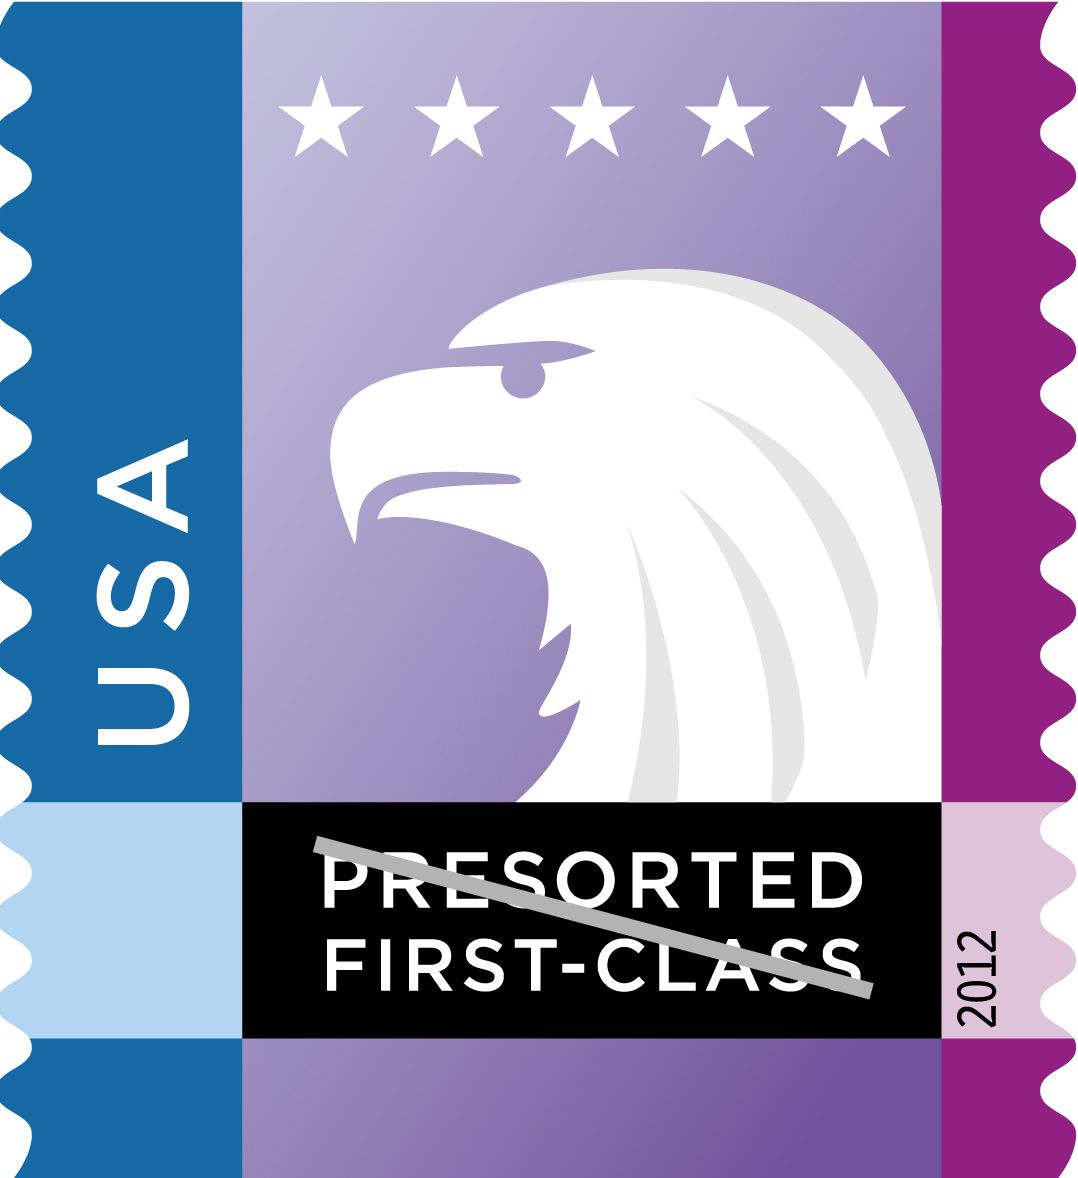 In 2012 usps issued six new presorted firstclass mail